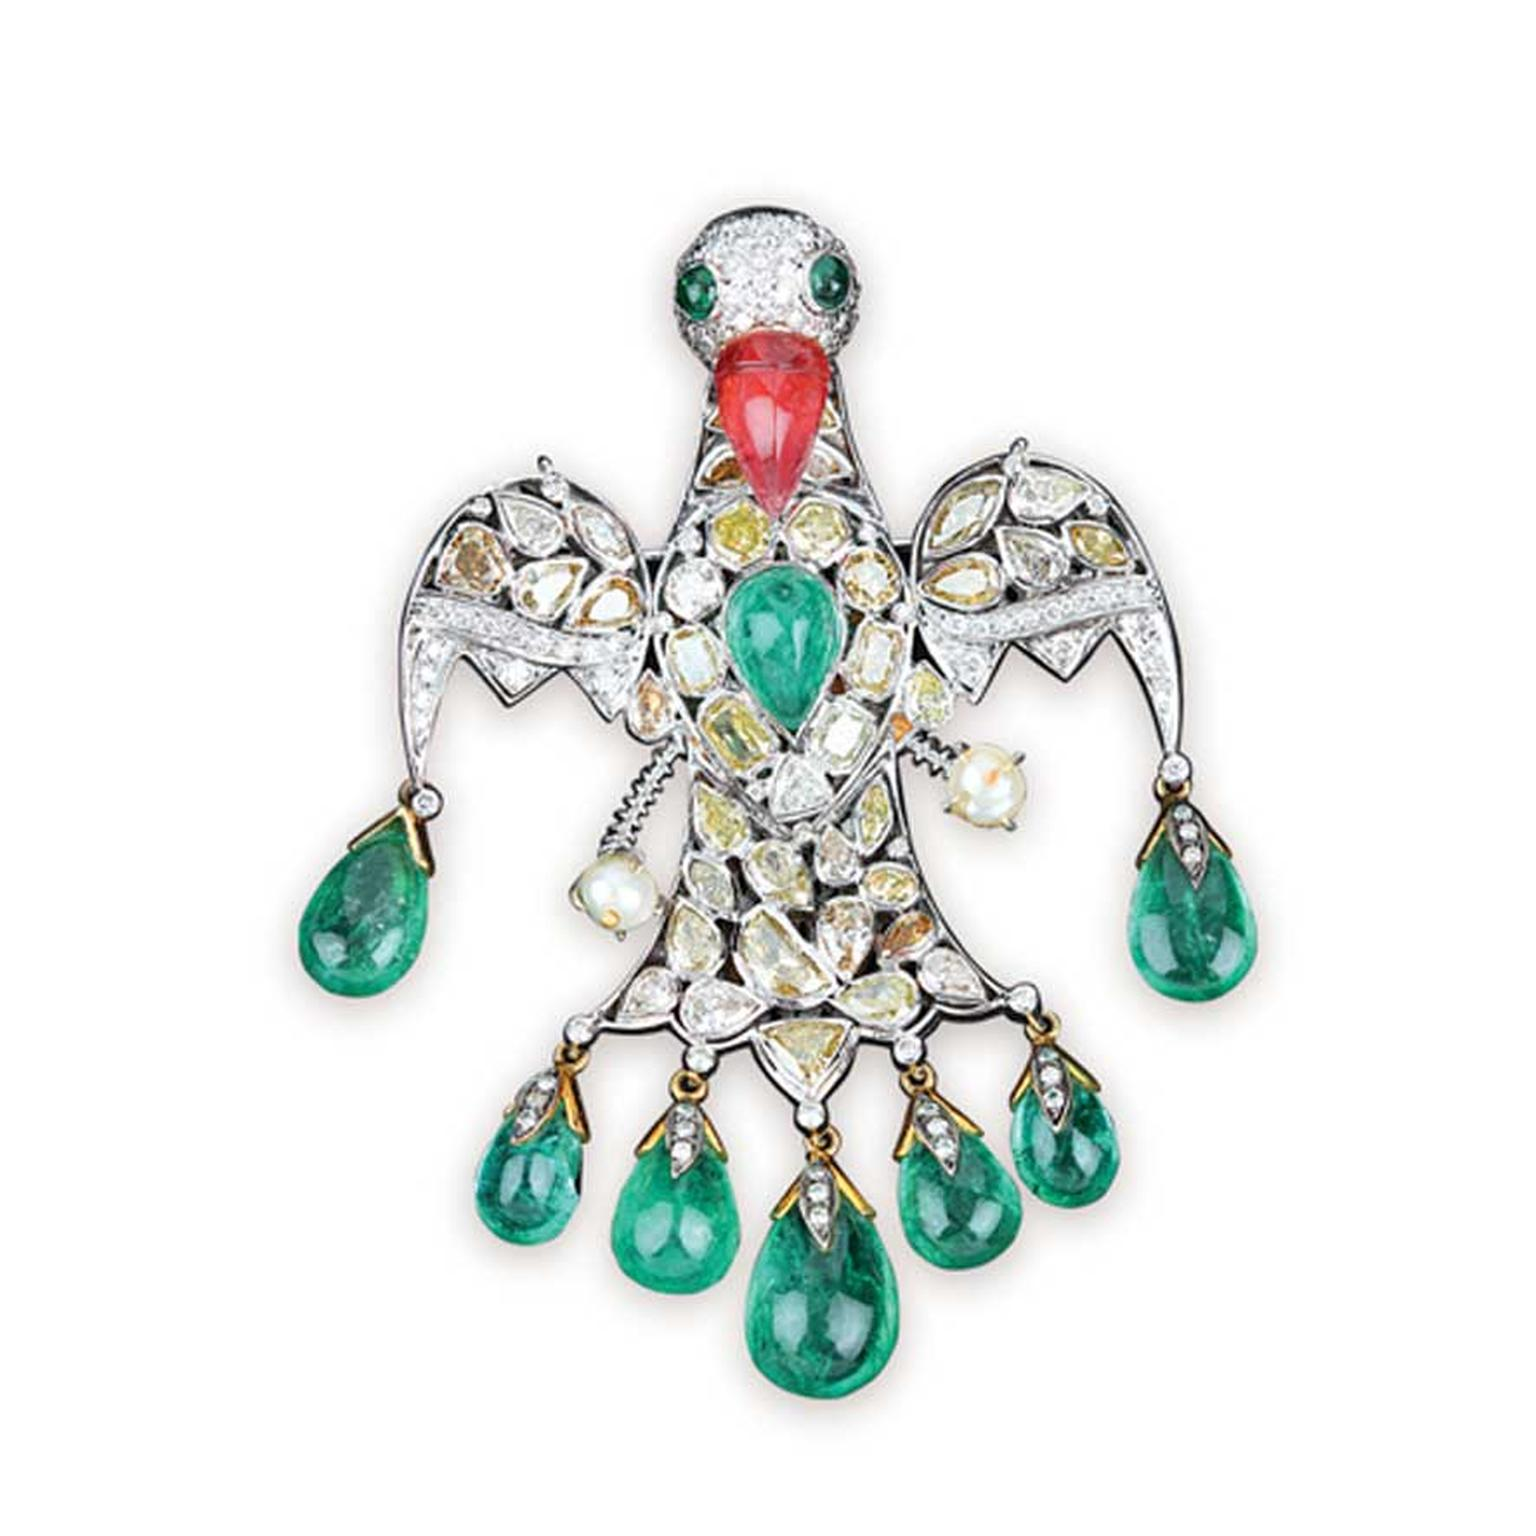 Golecha Bird brooch studded with kundan polki, ruby and emeralds.